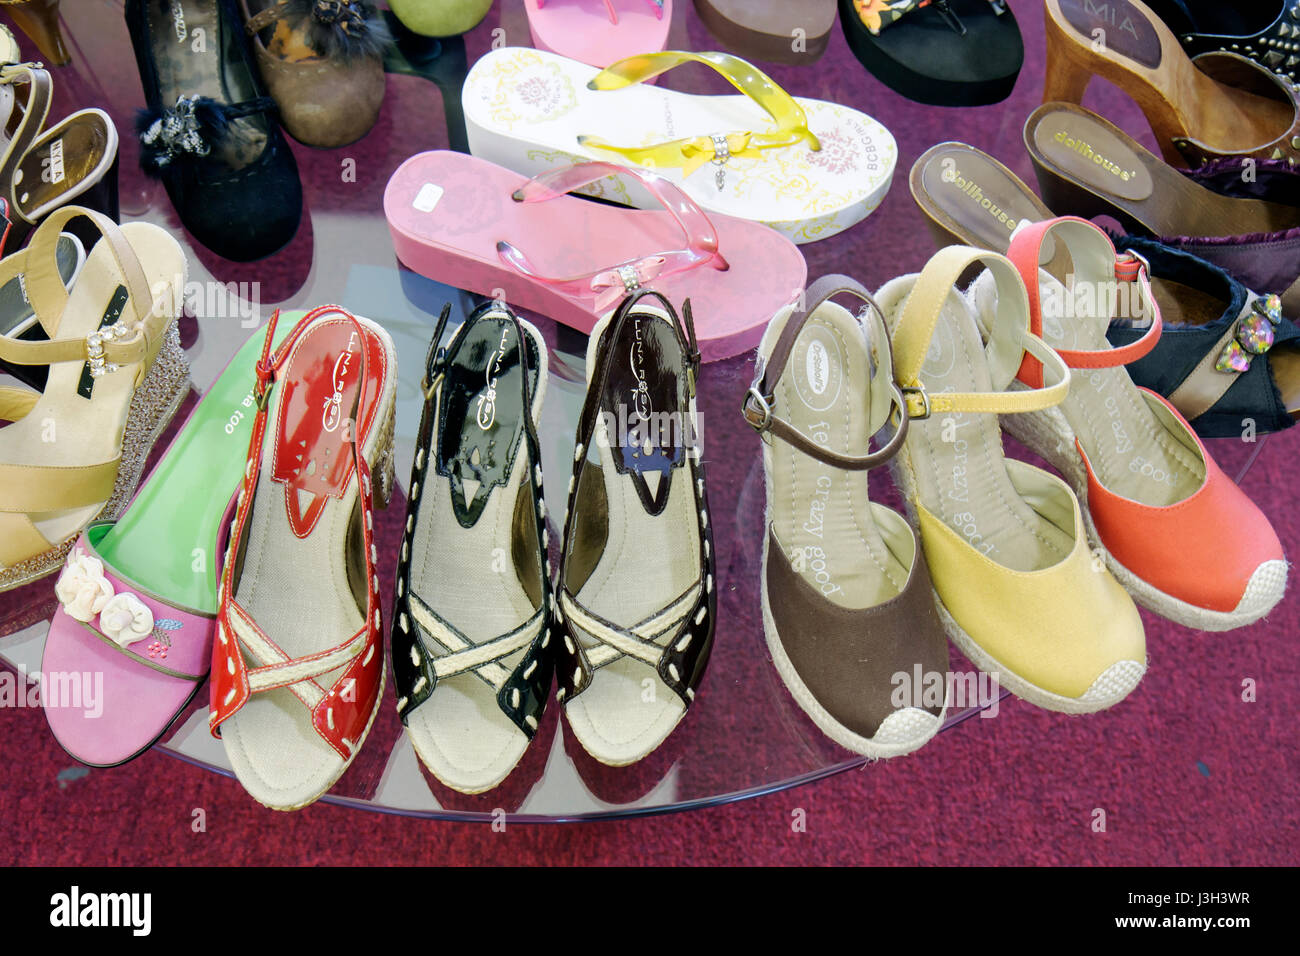 Display Sandals Shoe Sandals Footwear Footwear Display Stockfotosamp; Shoe N8On0wvm